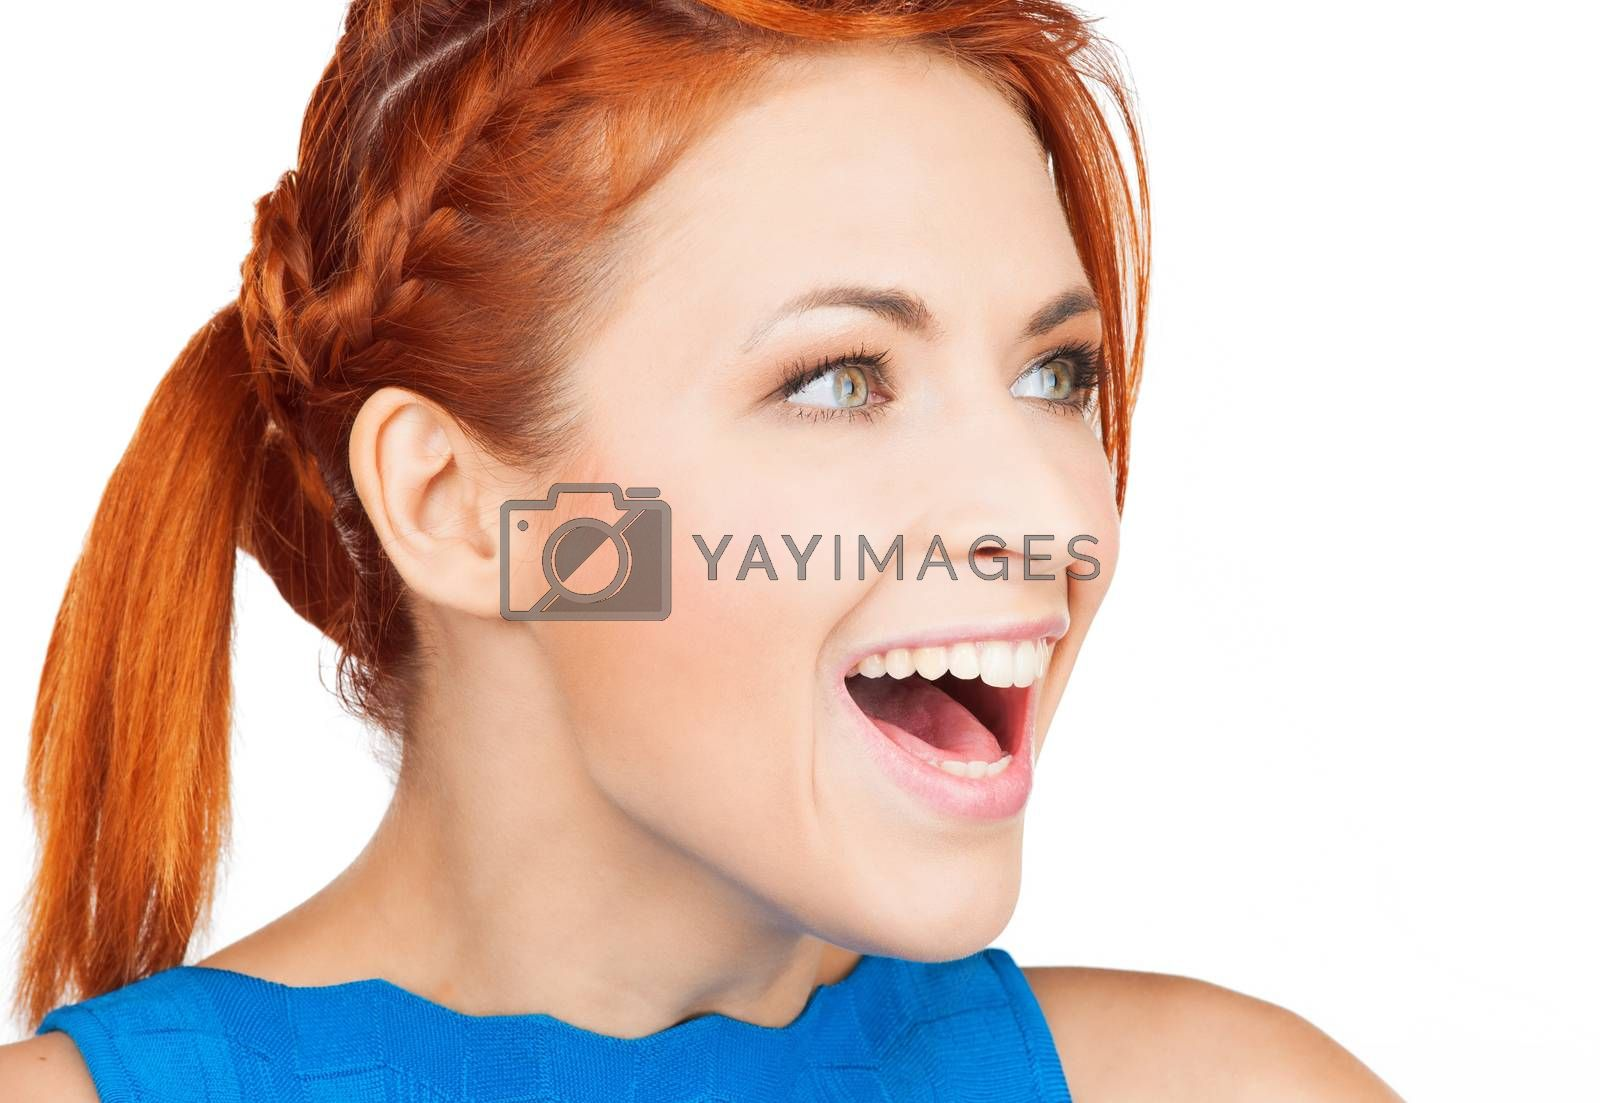 excited face of woman by dolgachov